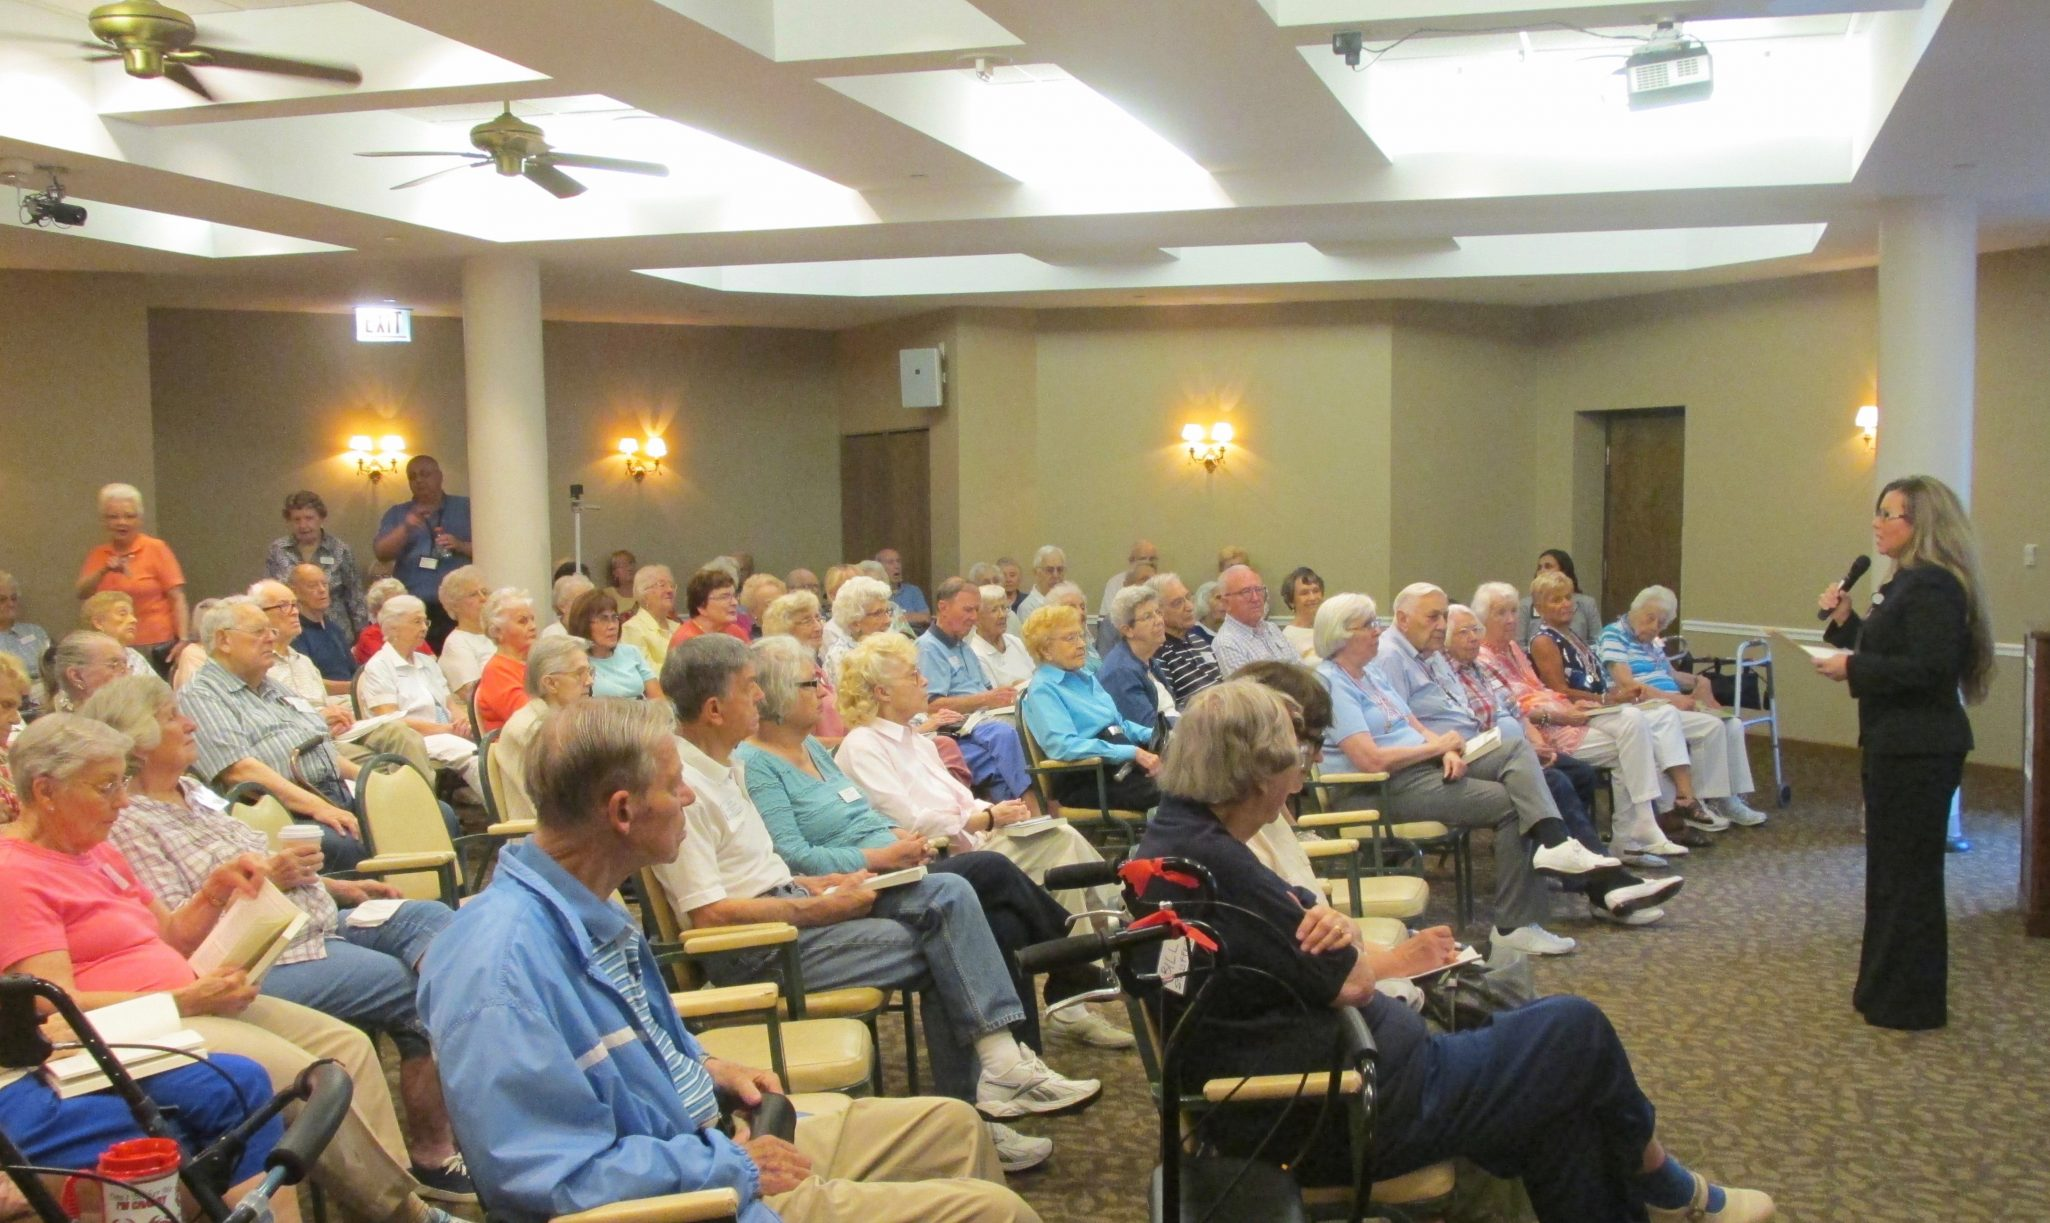 Residents of Oak Trace gathered to learn more about the wellness initiative, Masterpiece Living